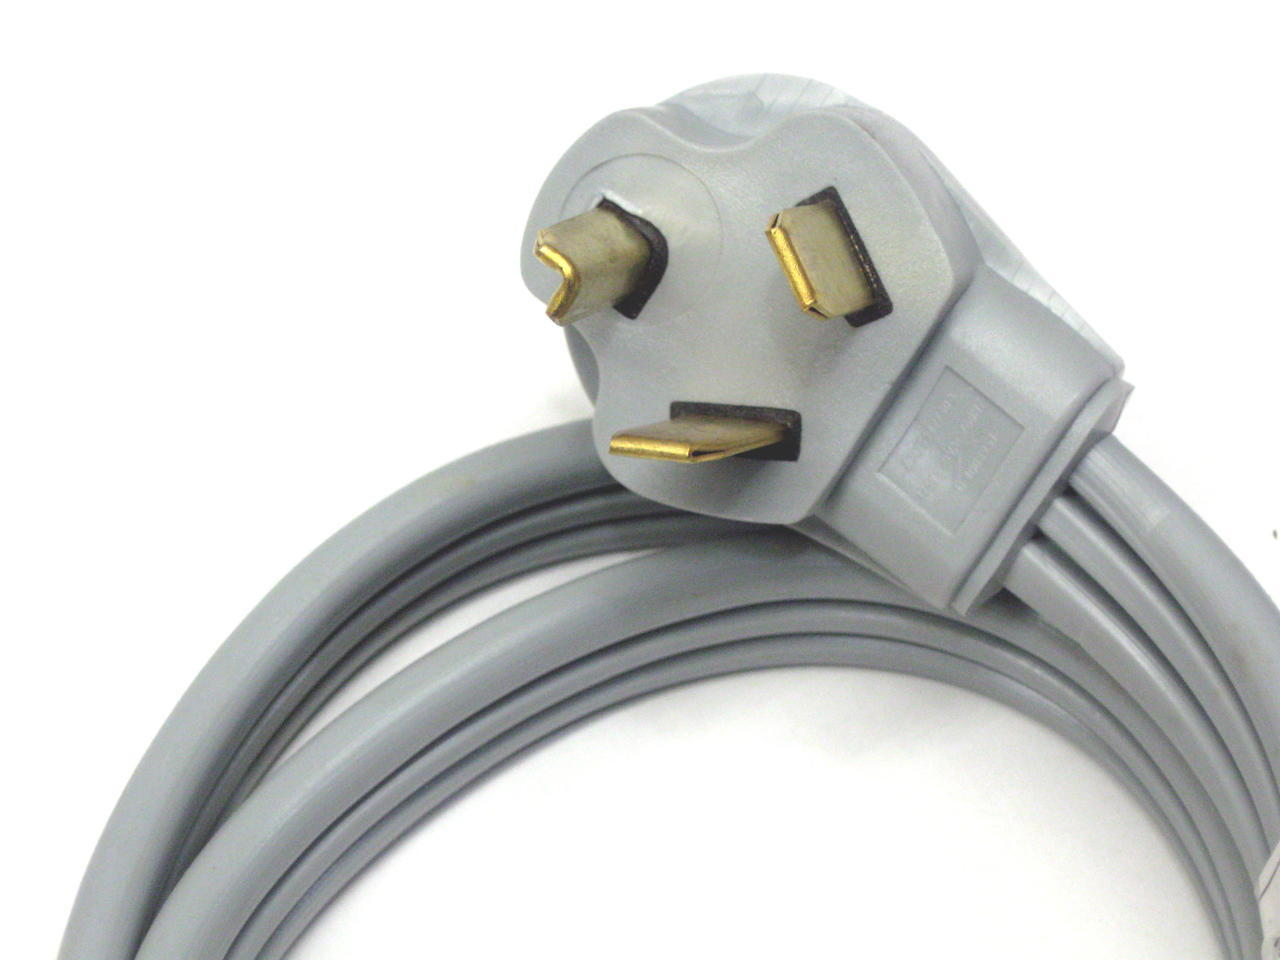 Range Vs Dryer Cord Theres A Difference Mccombs Supply Co Inc 220v 50a Plug Wiring